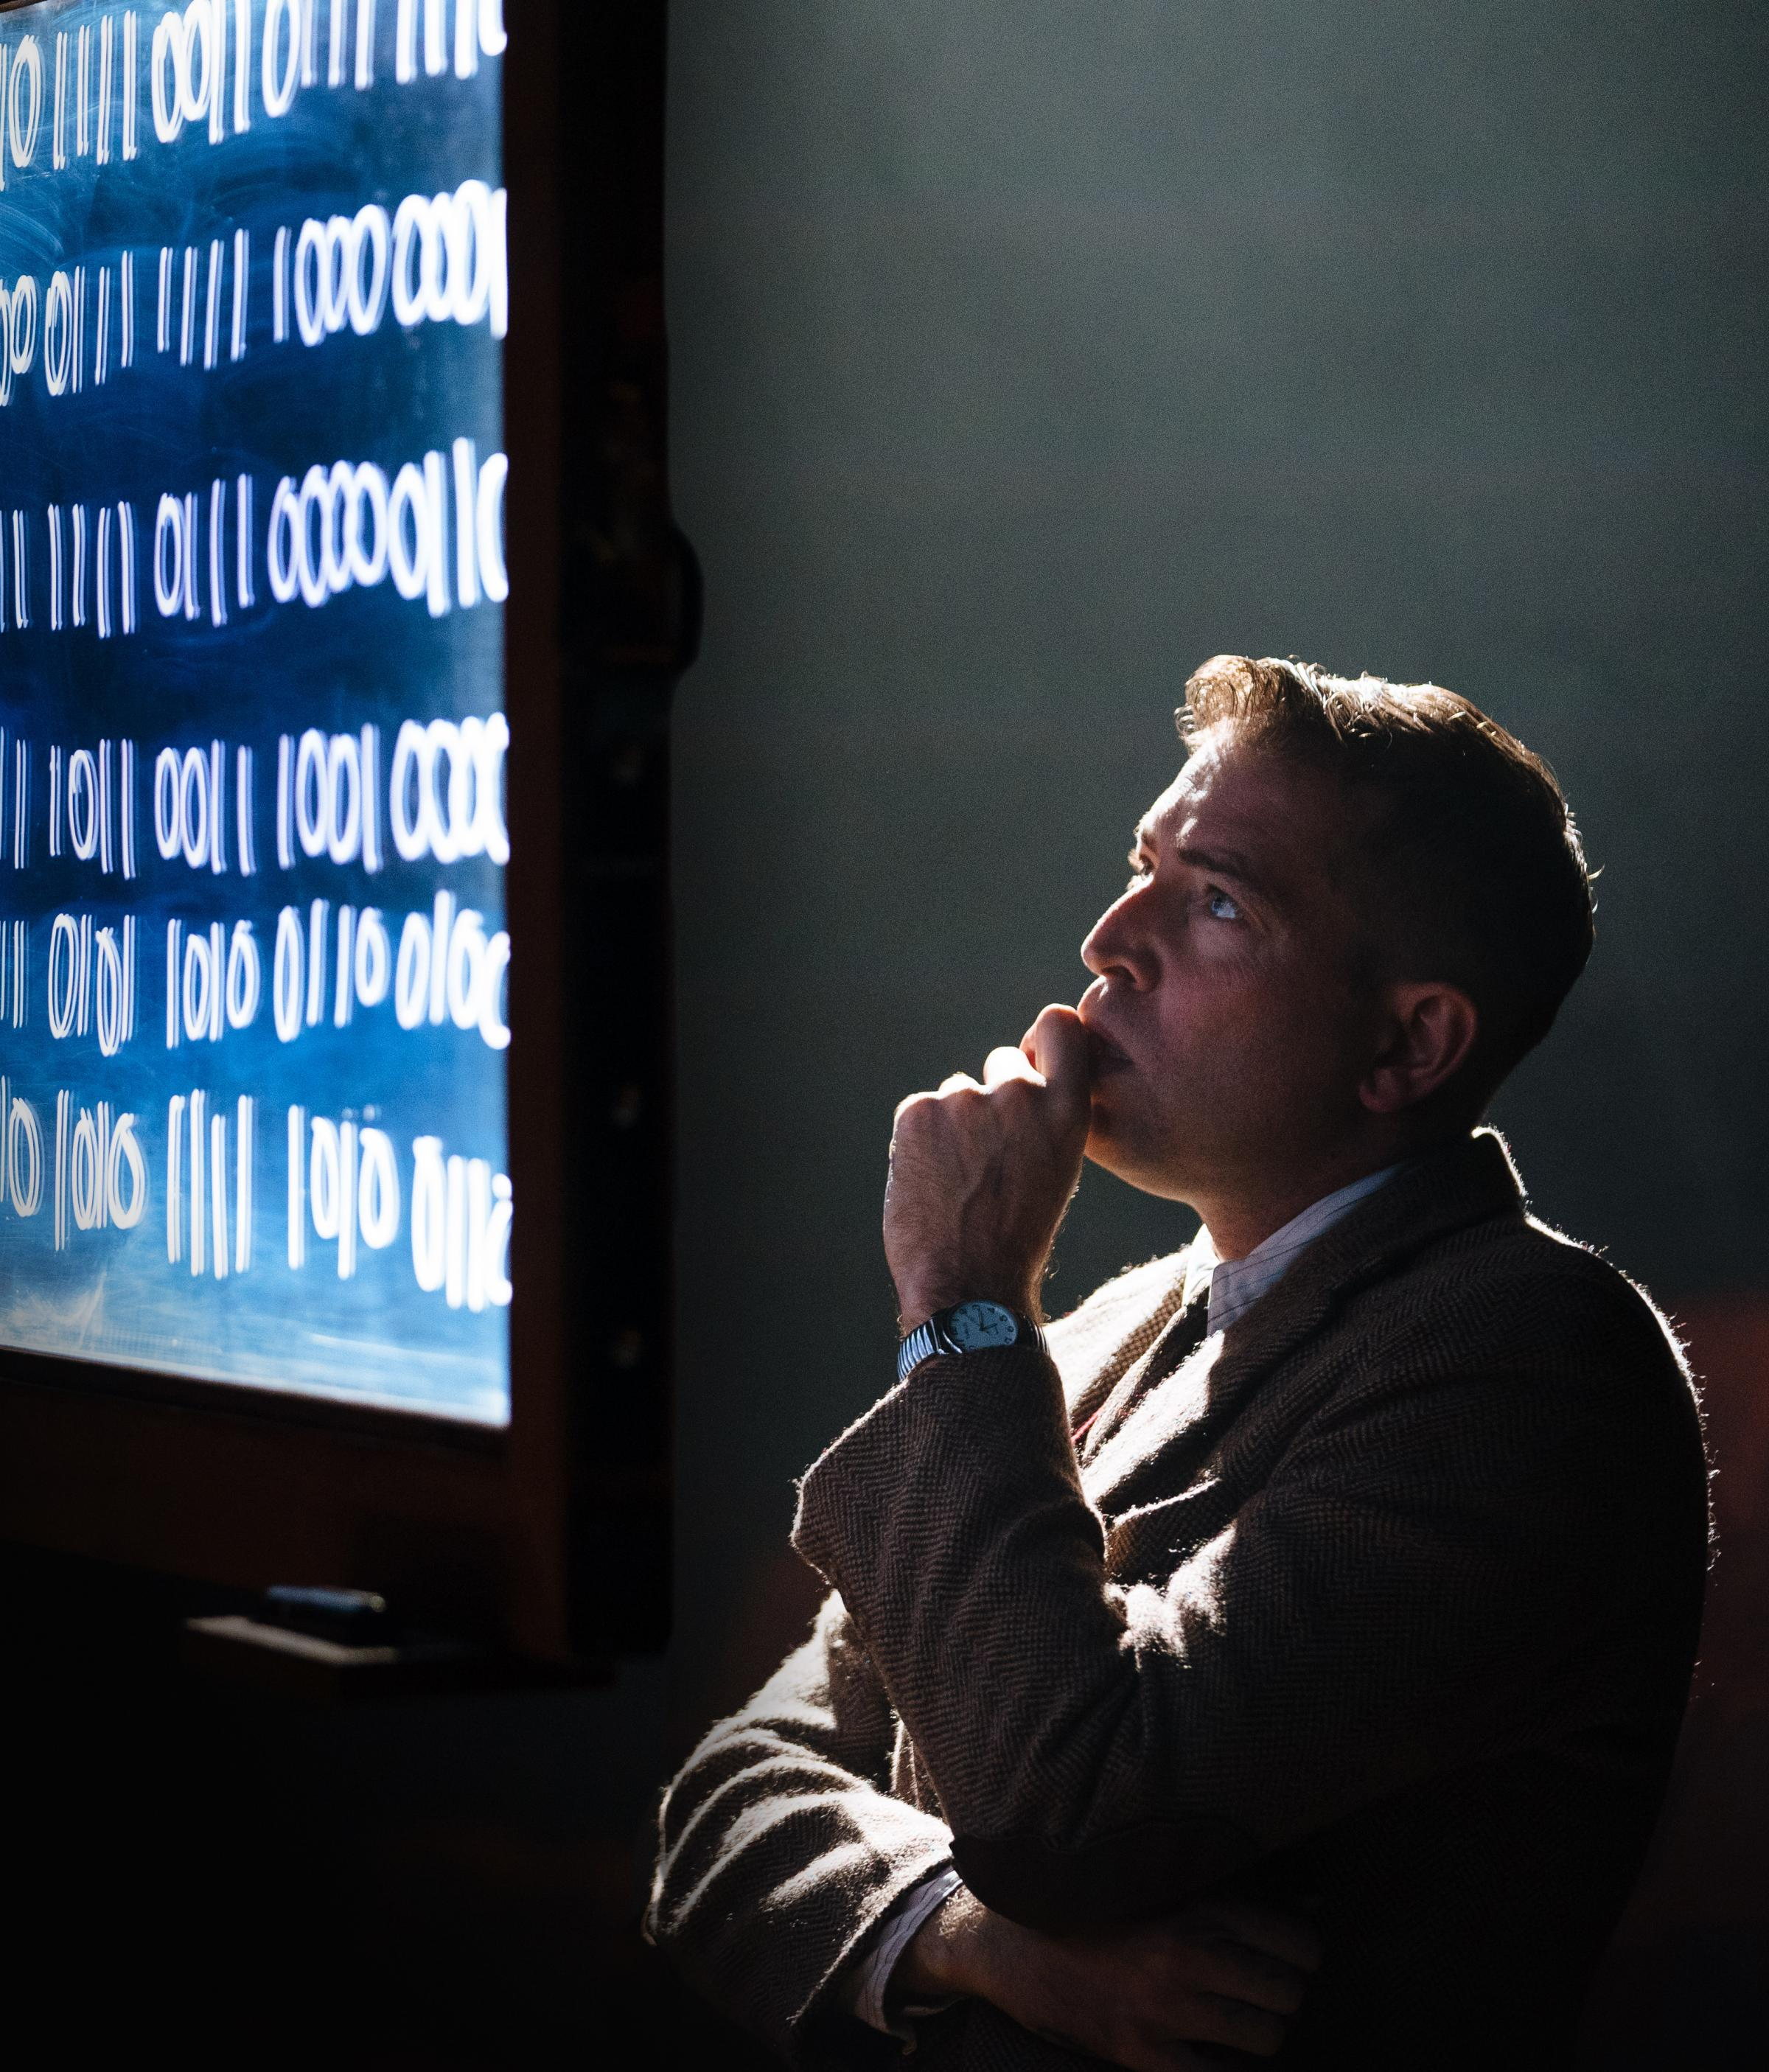 Breaking the Code at Salisbury Playhouse tells story of the great mathematician Alan Turing